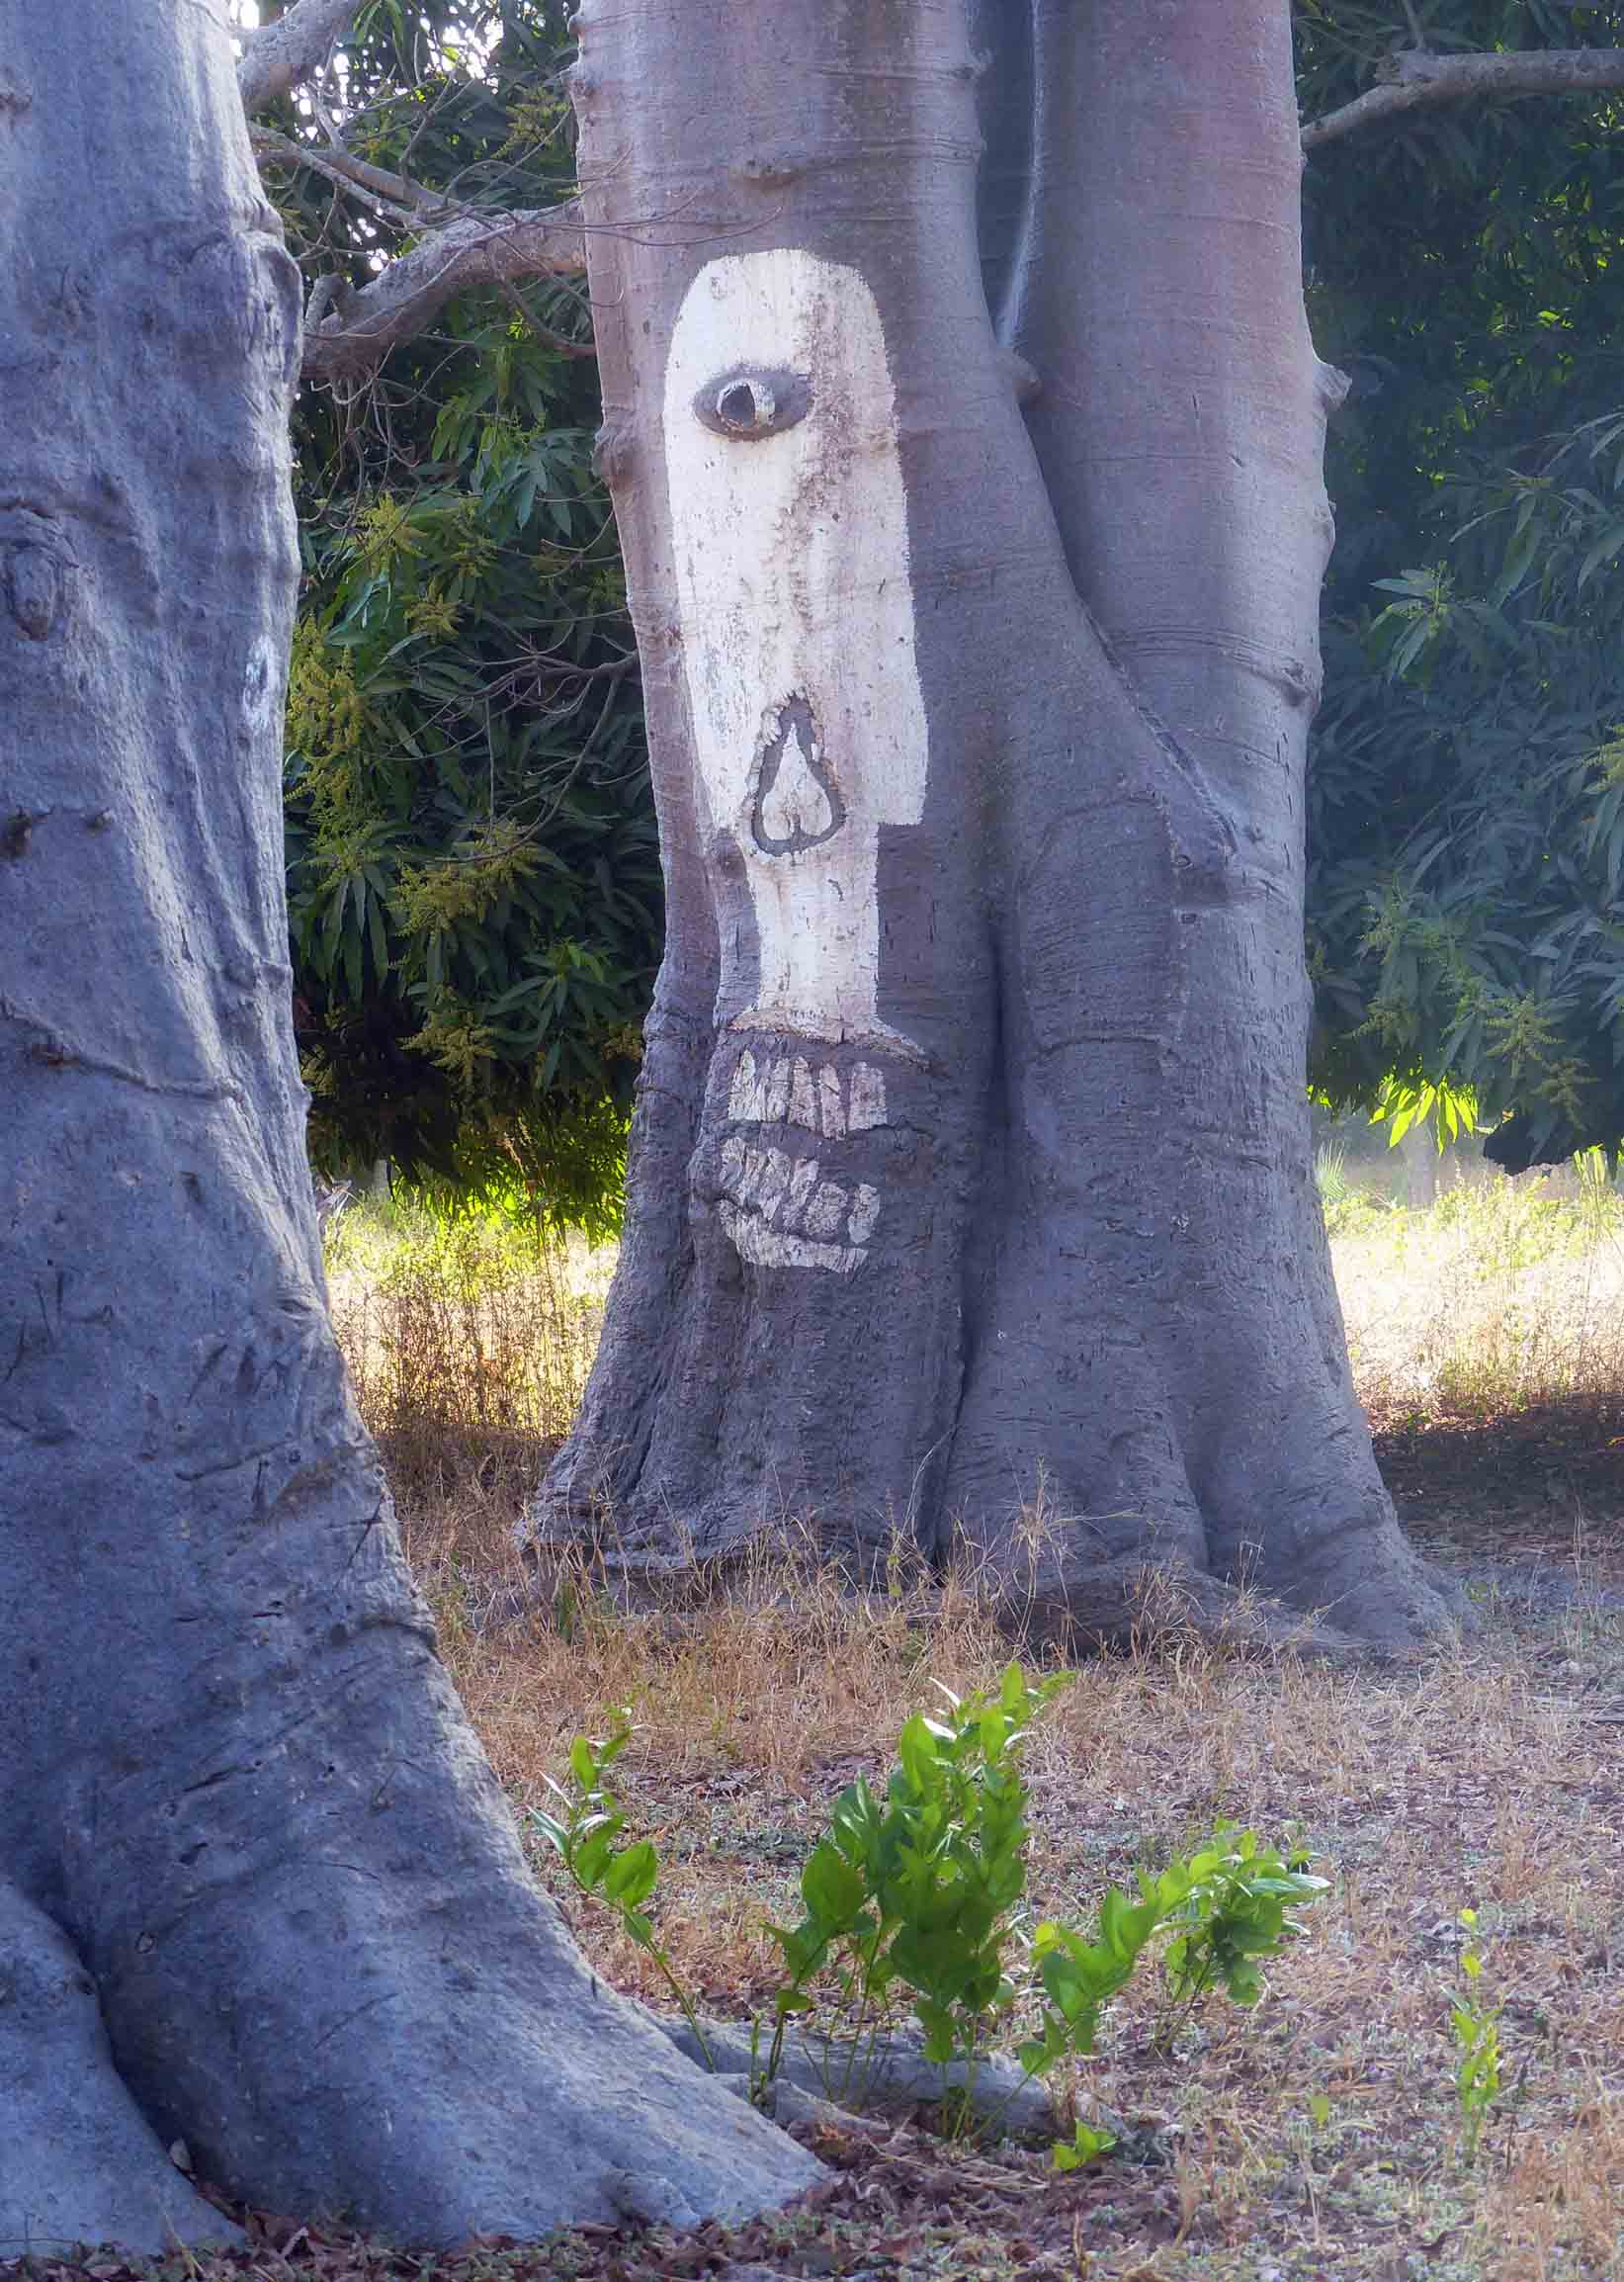 One-eyed white face painted on tree trunk